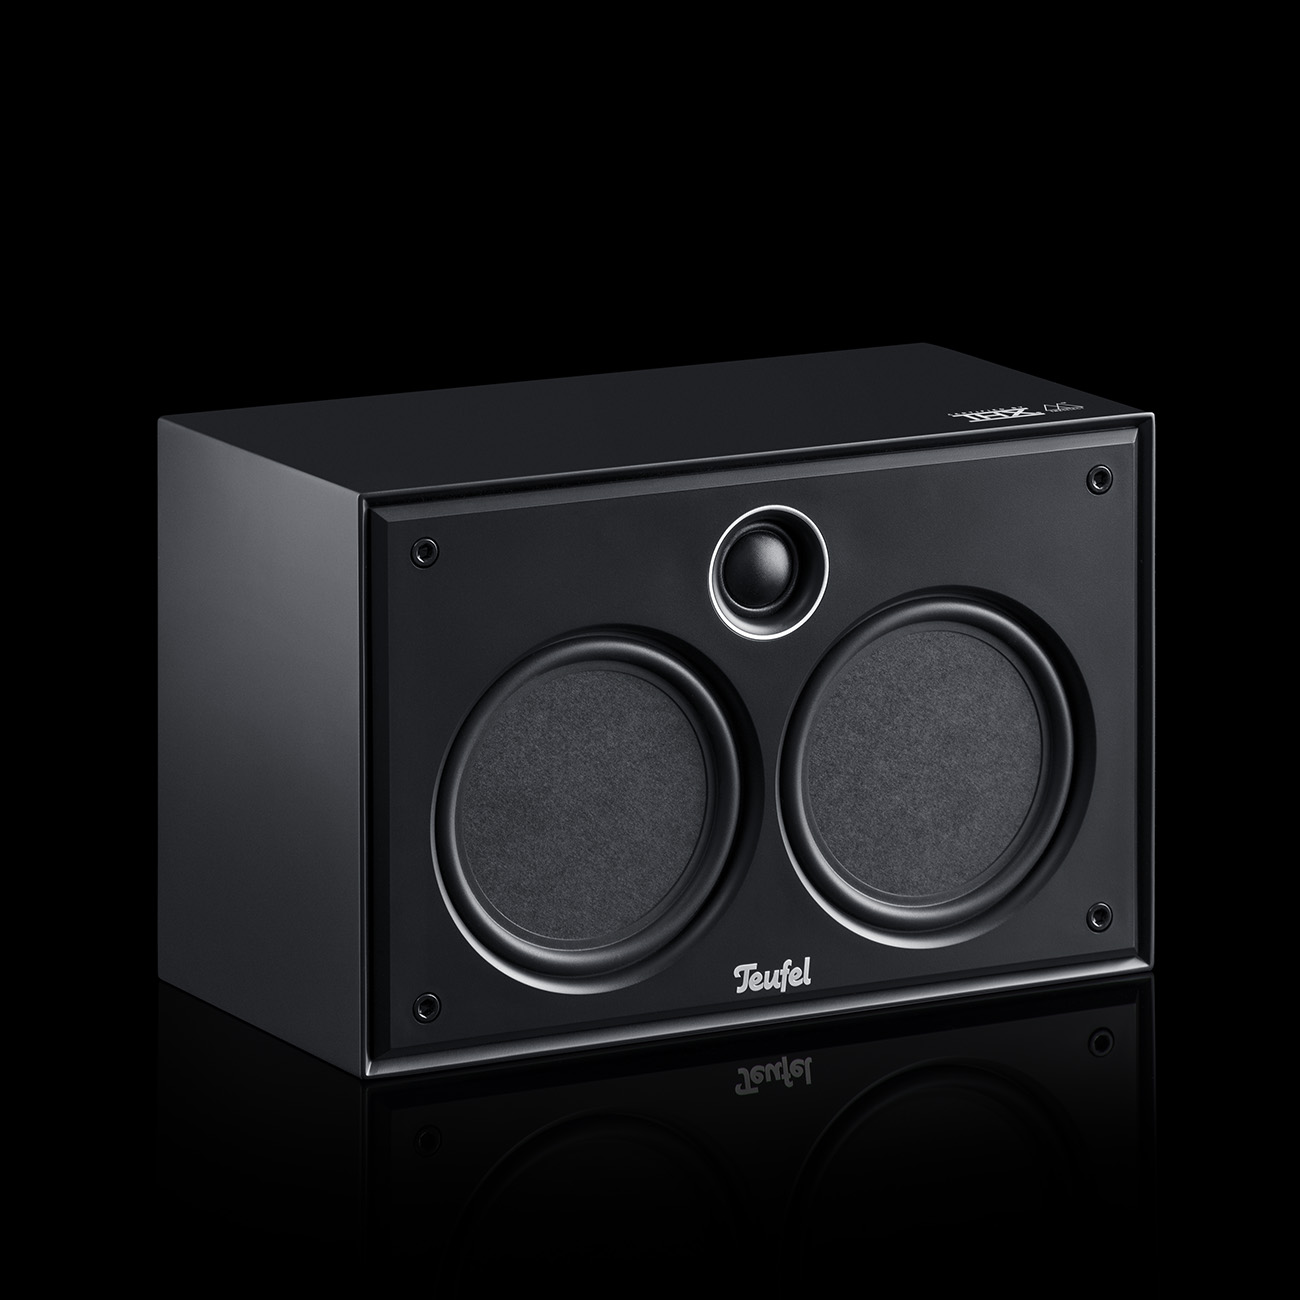 system-6-thx-select-fcr-front-angled-black-on-black-1300x1300x72.jpg